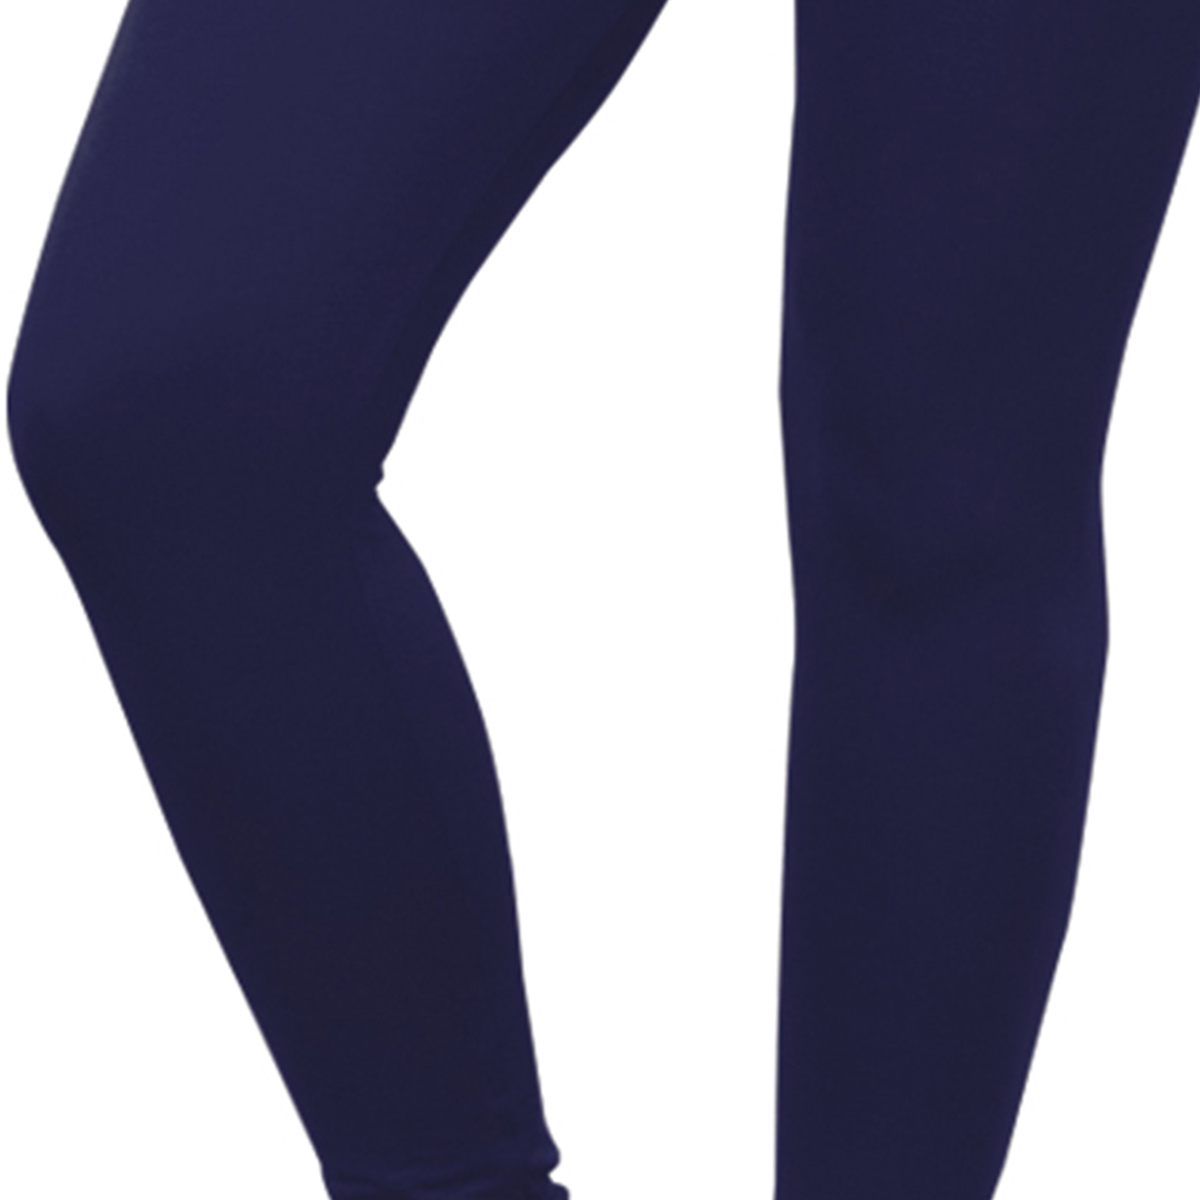 Gorgeous Navy Blue Colored Casual Wear Ankle Length Leggings